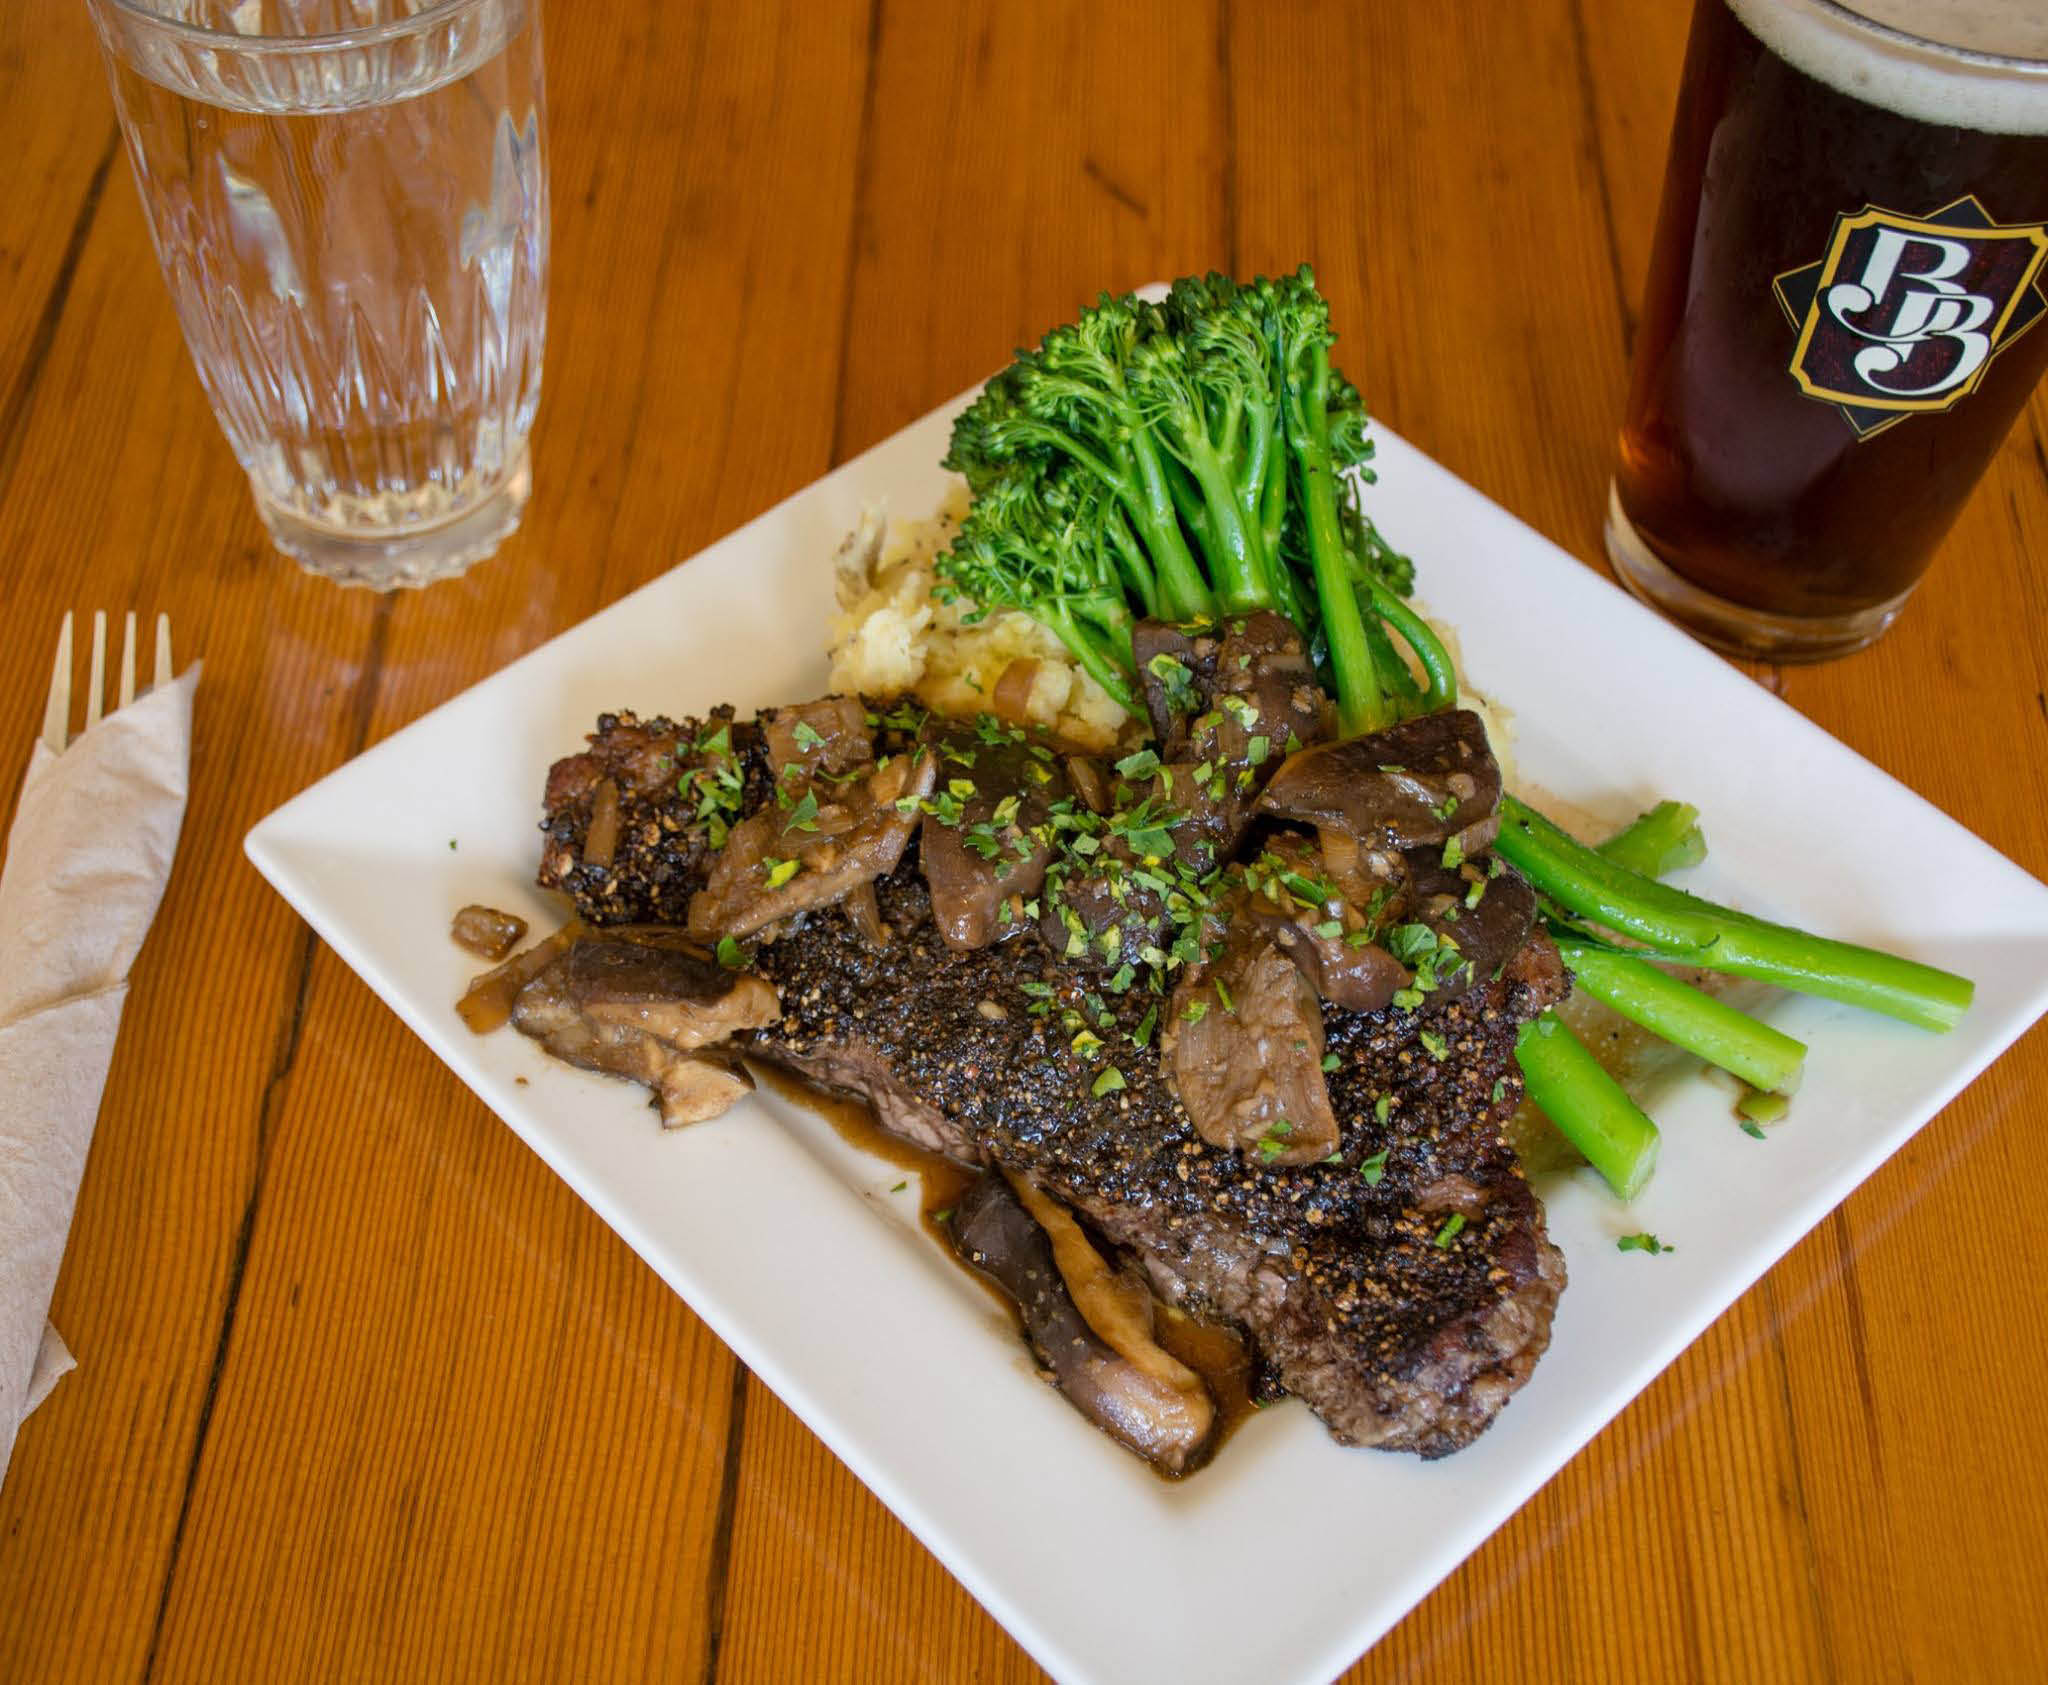 Boundary Bay Brewery Bellingham whatcom county steak